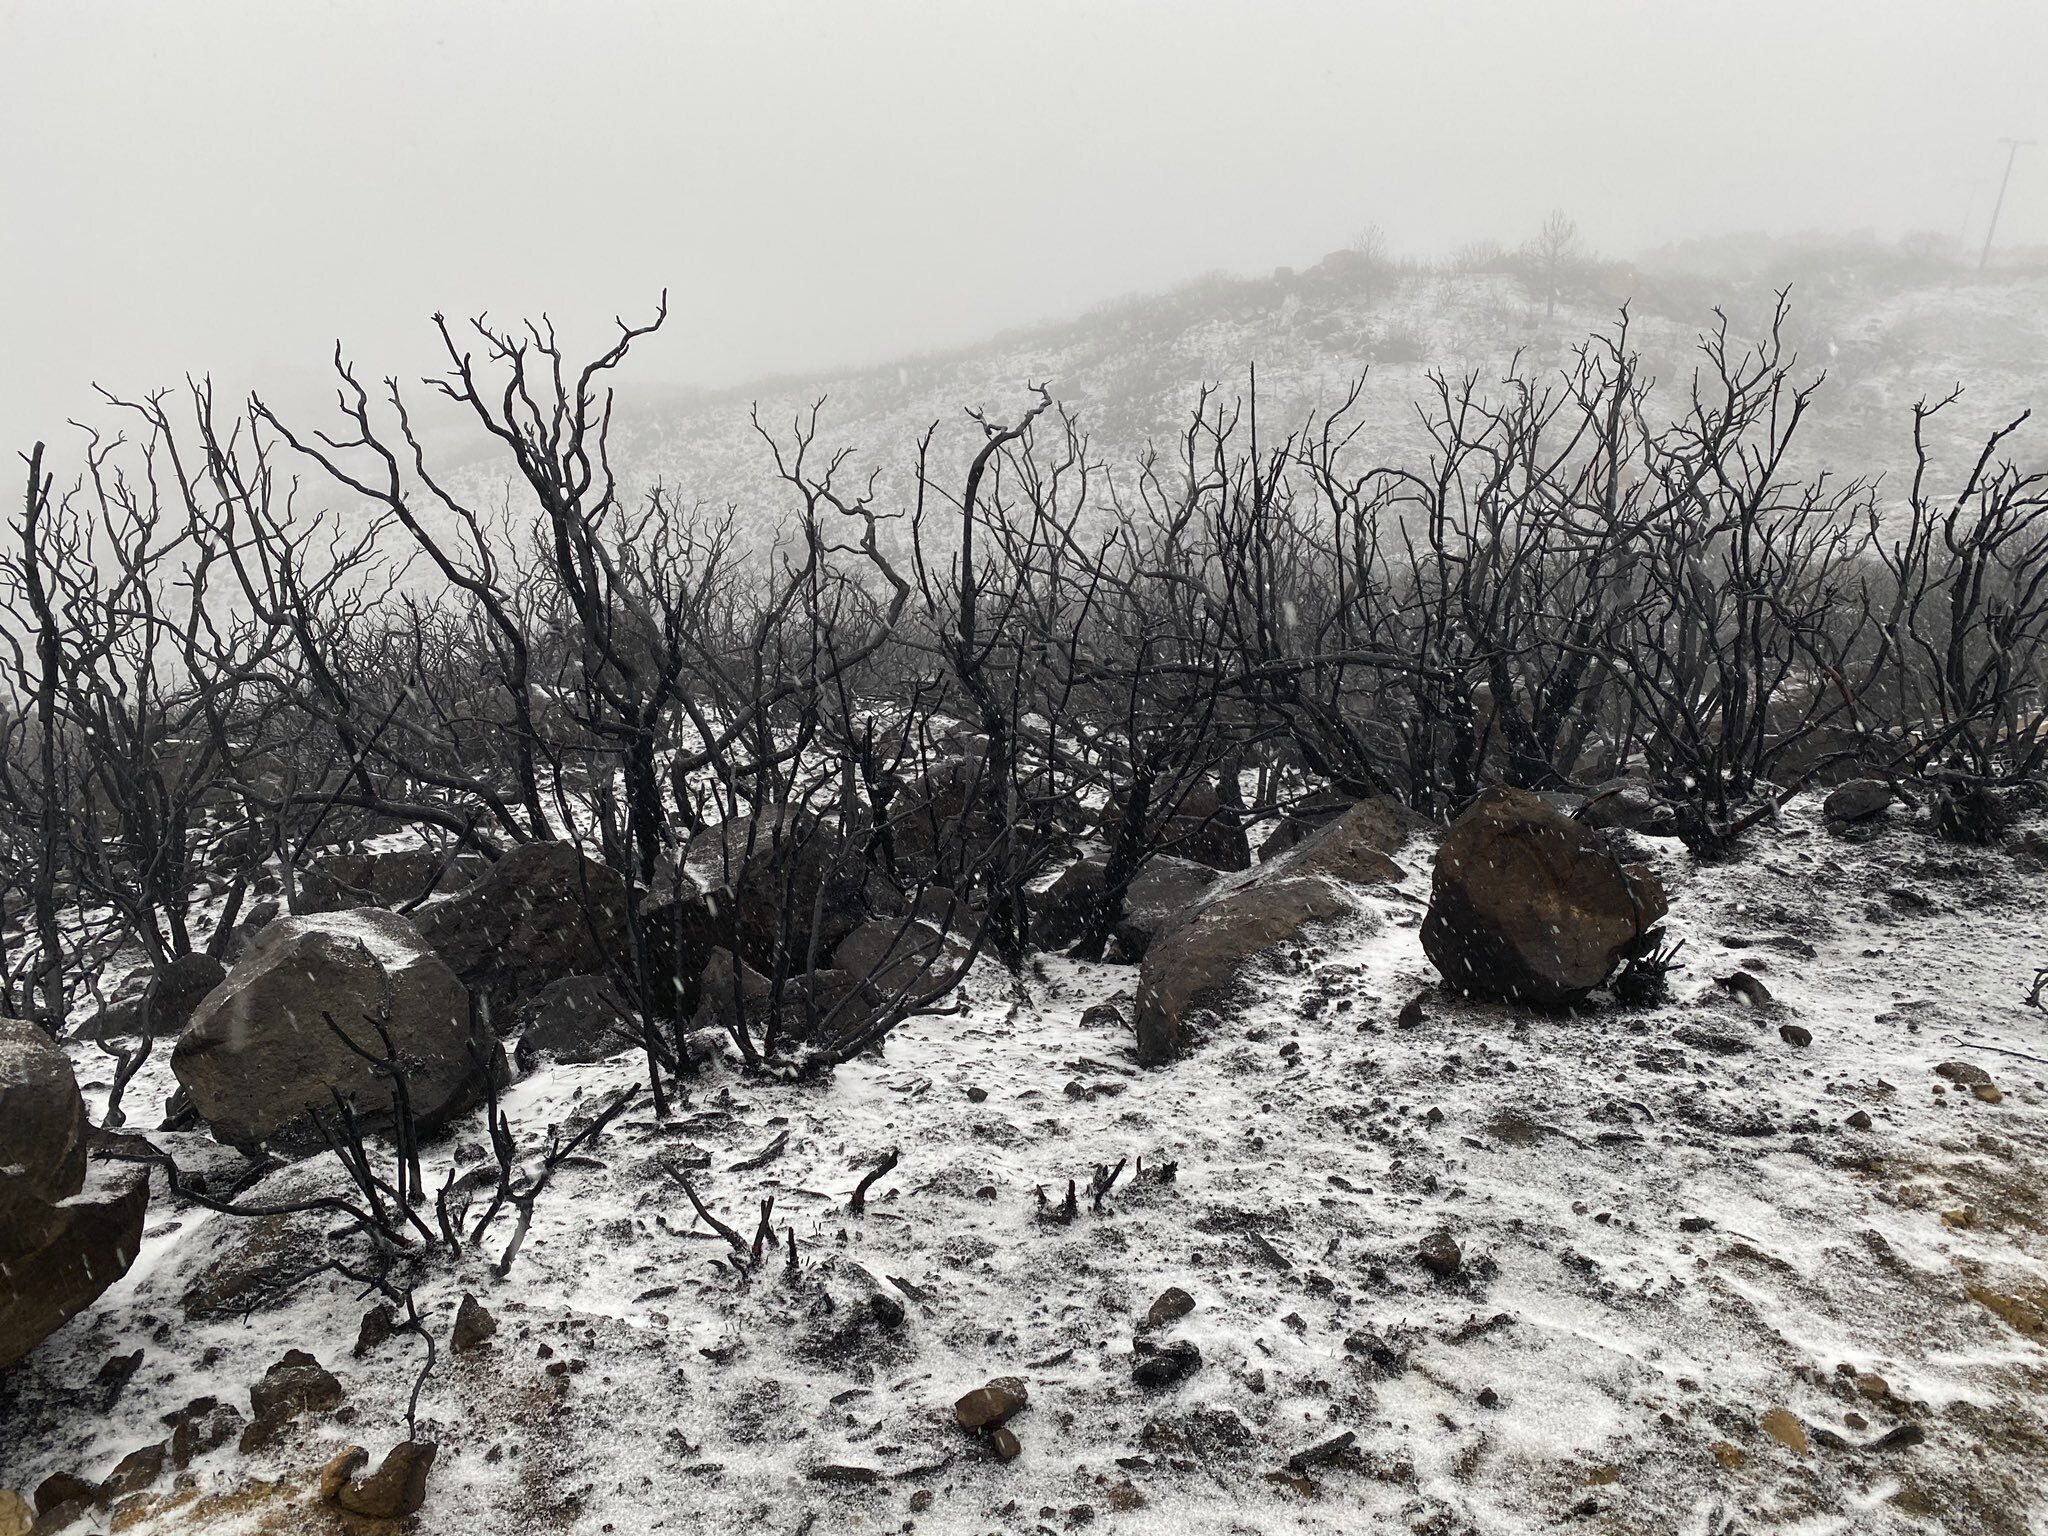 Snow in recently burned wilderness area.